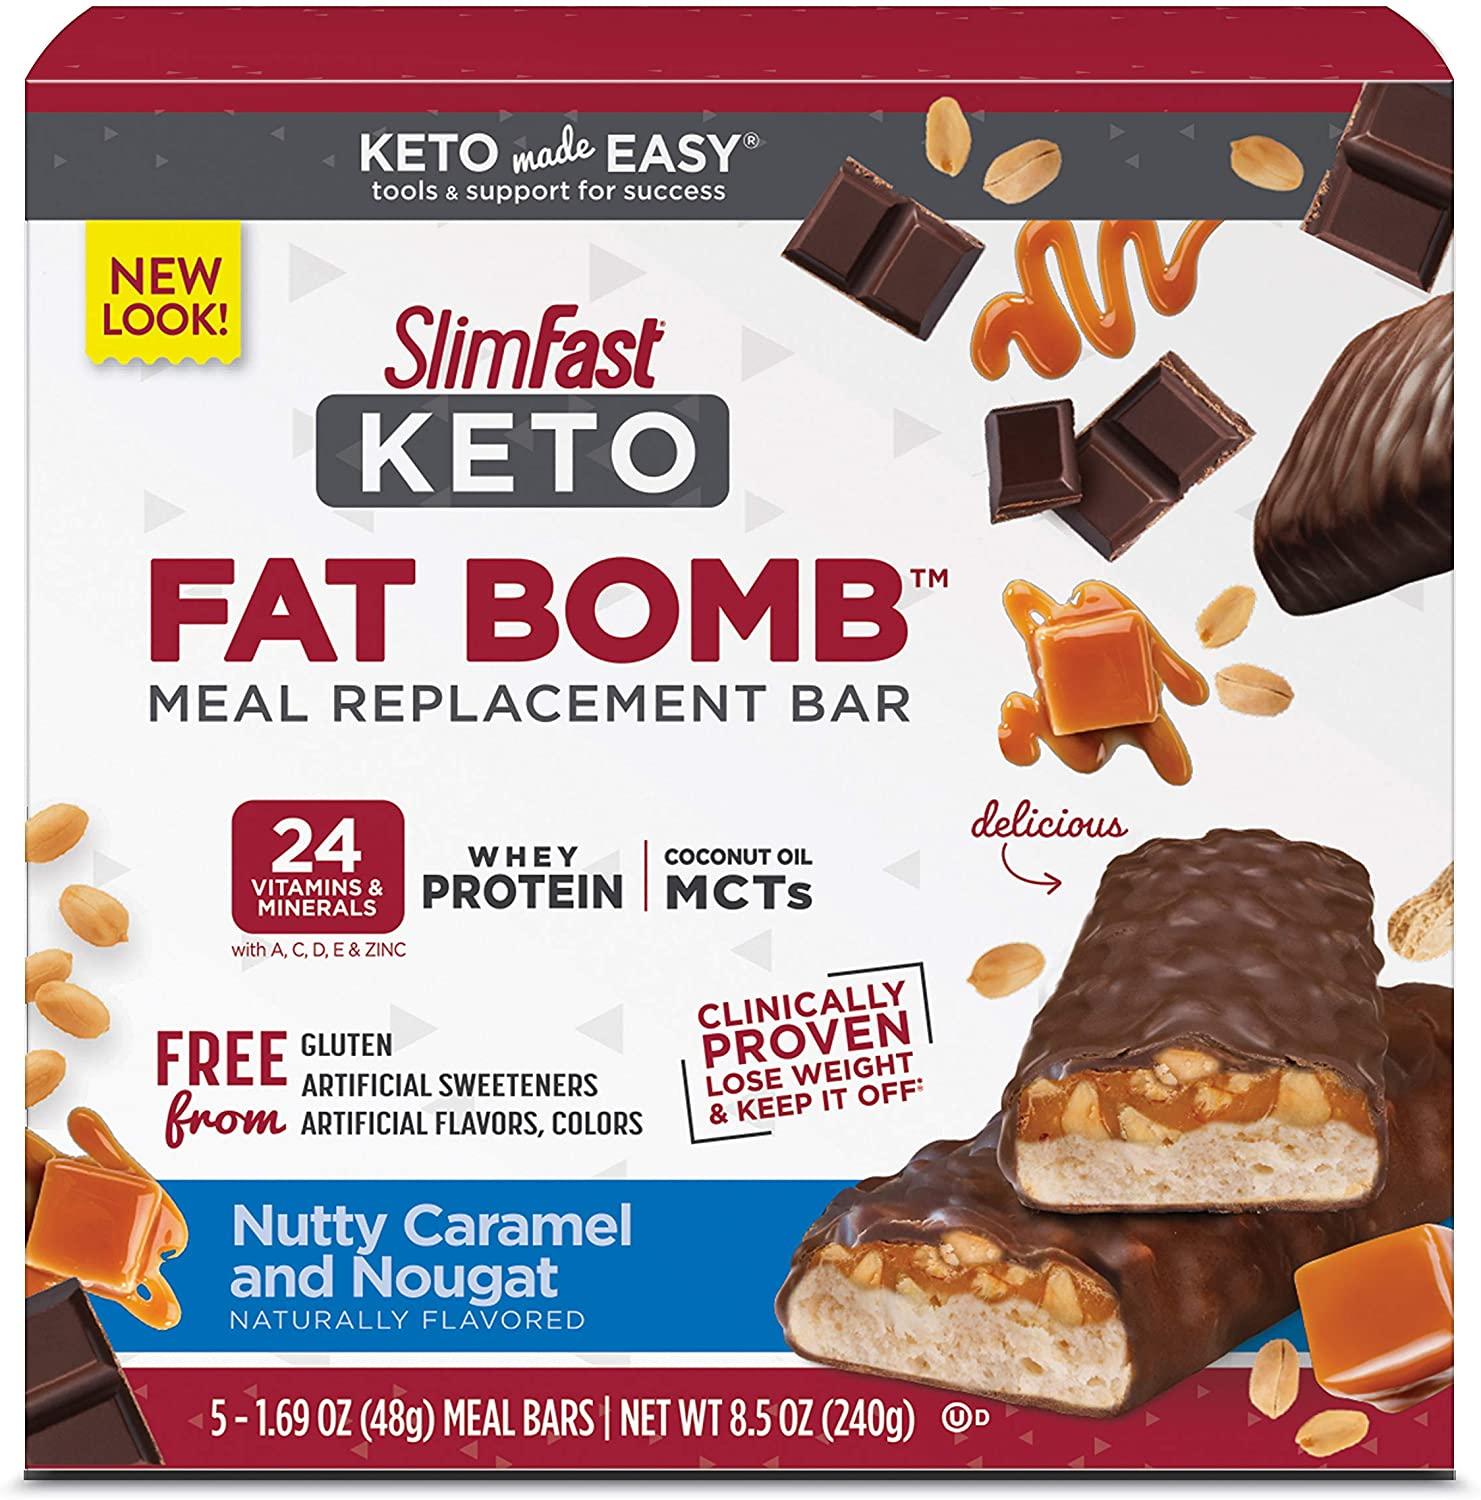 SlimFast Keto-Friendly Meal Replacement Bar